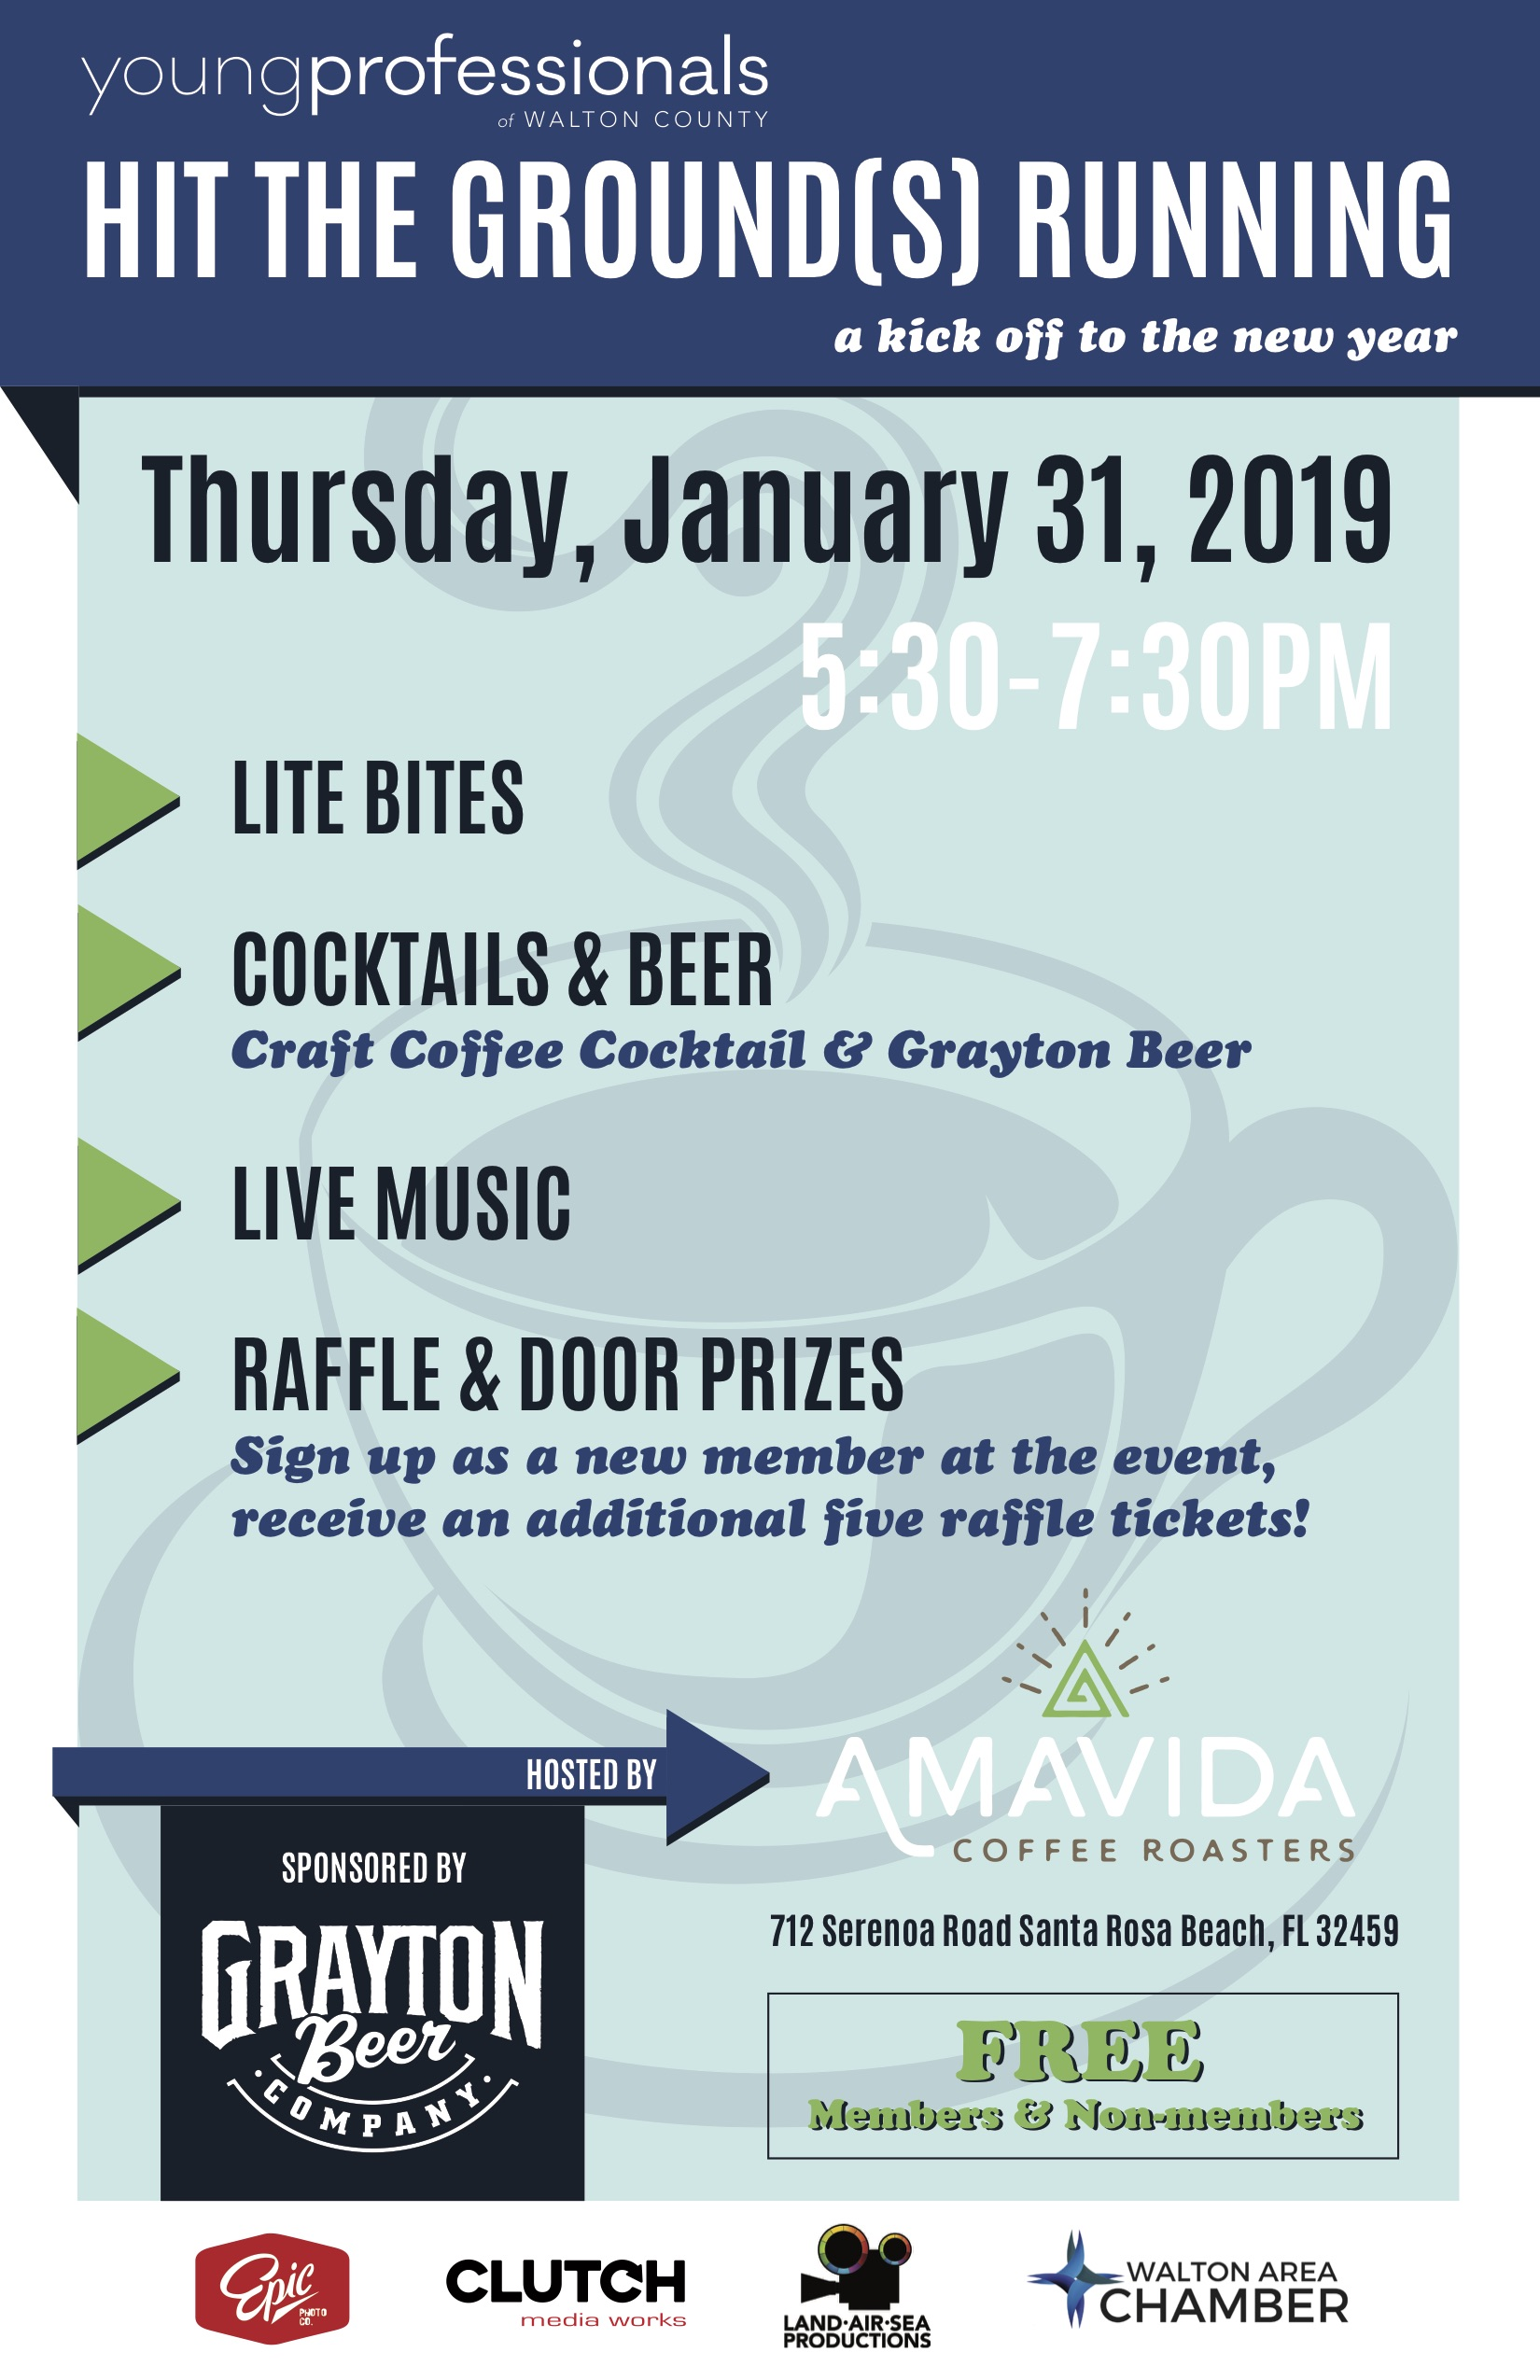 Young Professionals of Walton County HostFirst Event of 2019